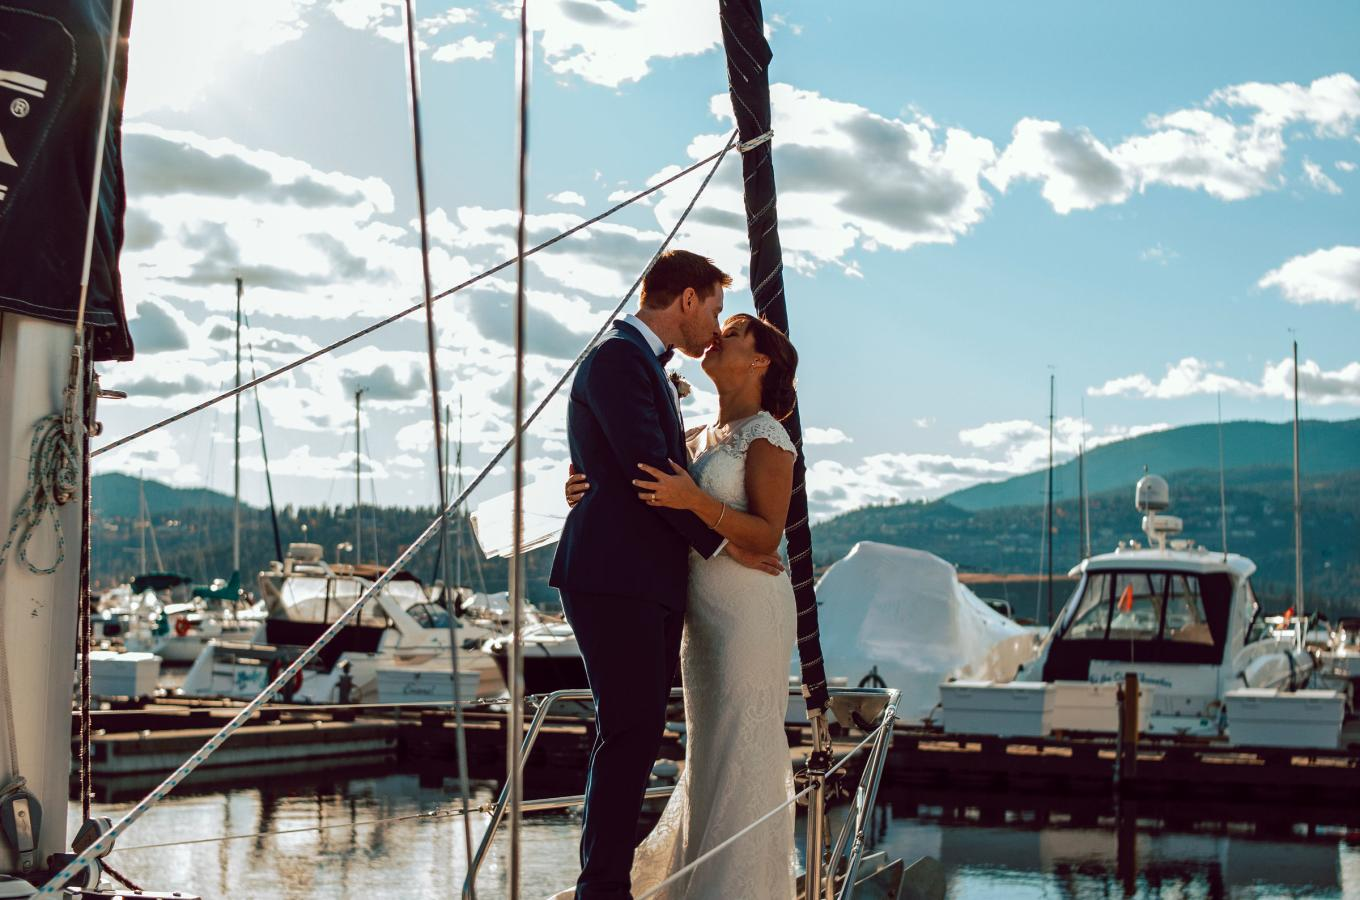 Wedding Couple on Boat